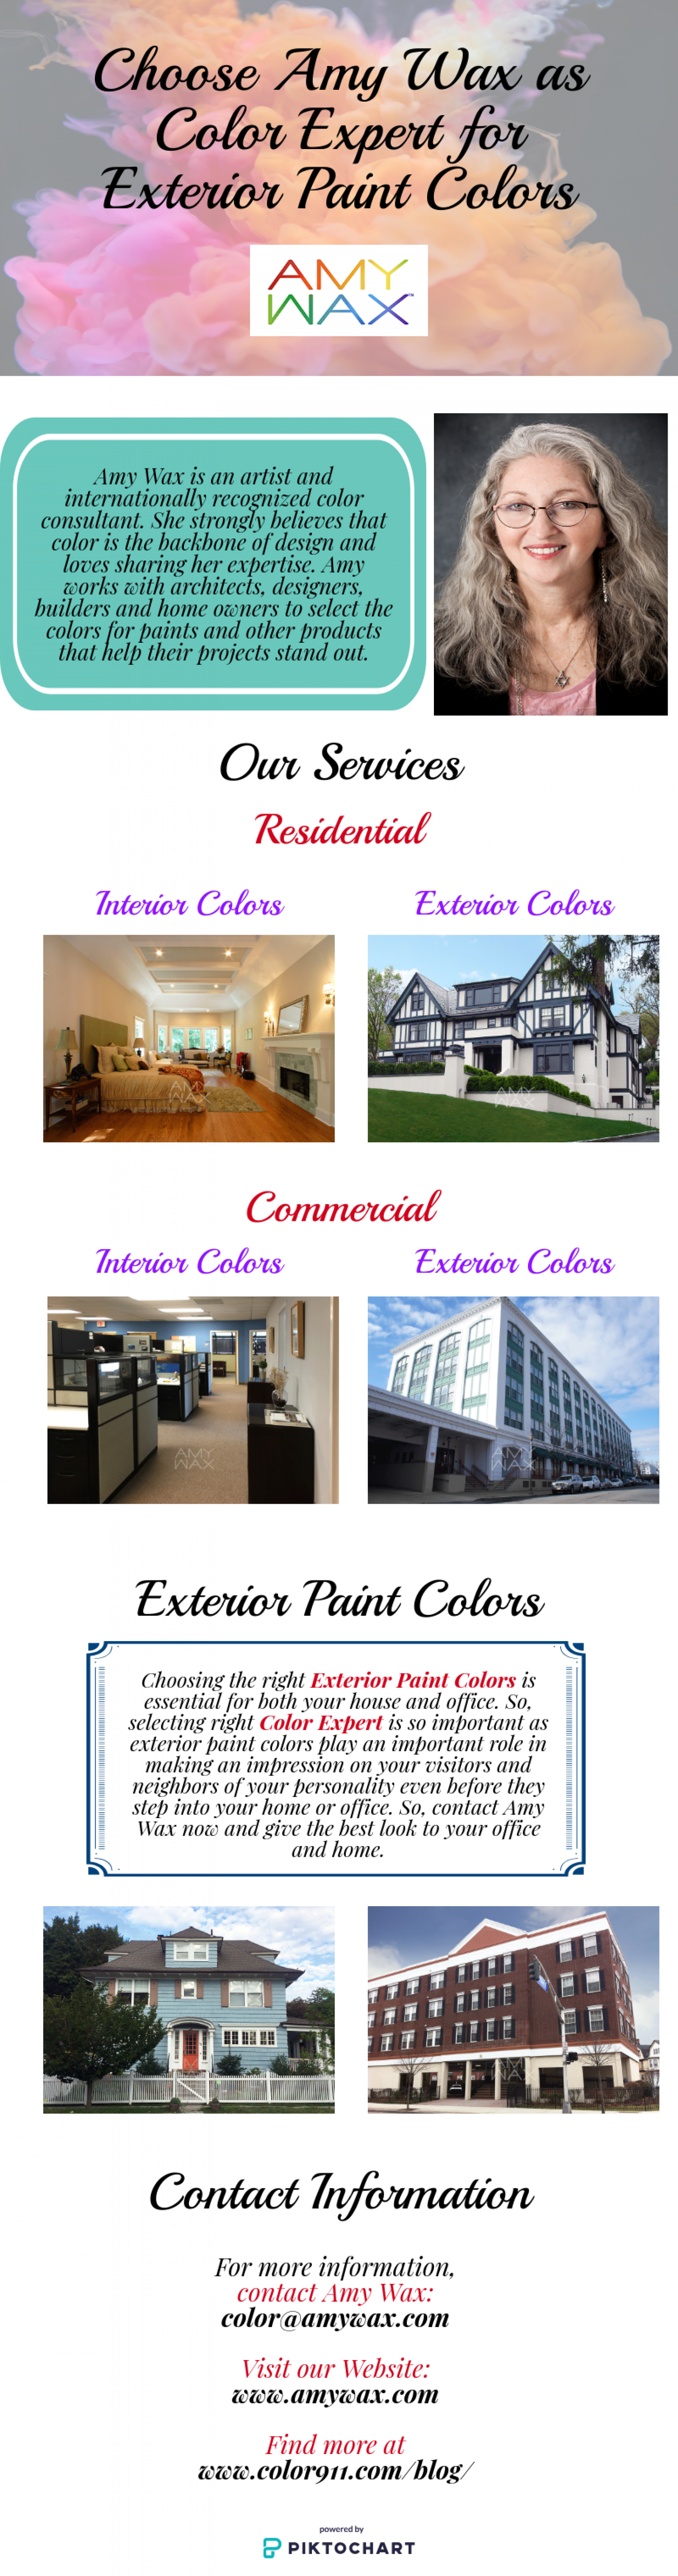 Choose Amy Wax as Color Expert for Exterior Paint Colors Infographic